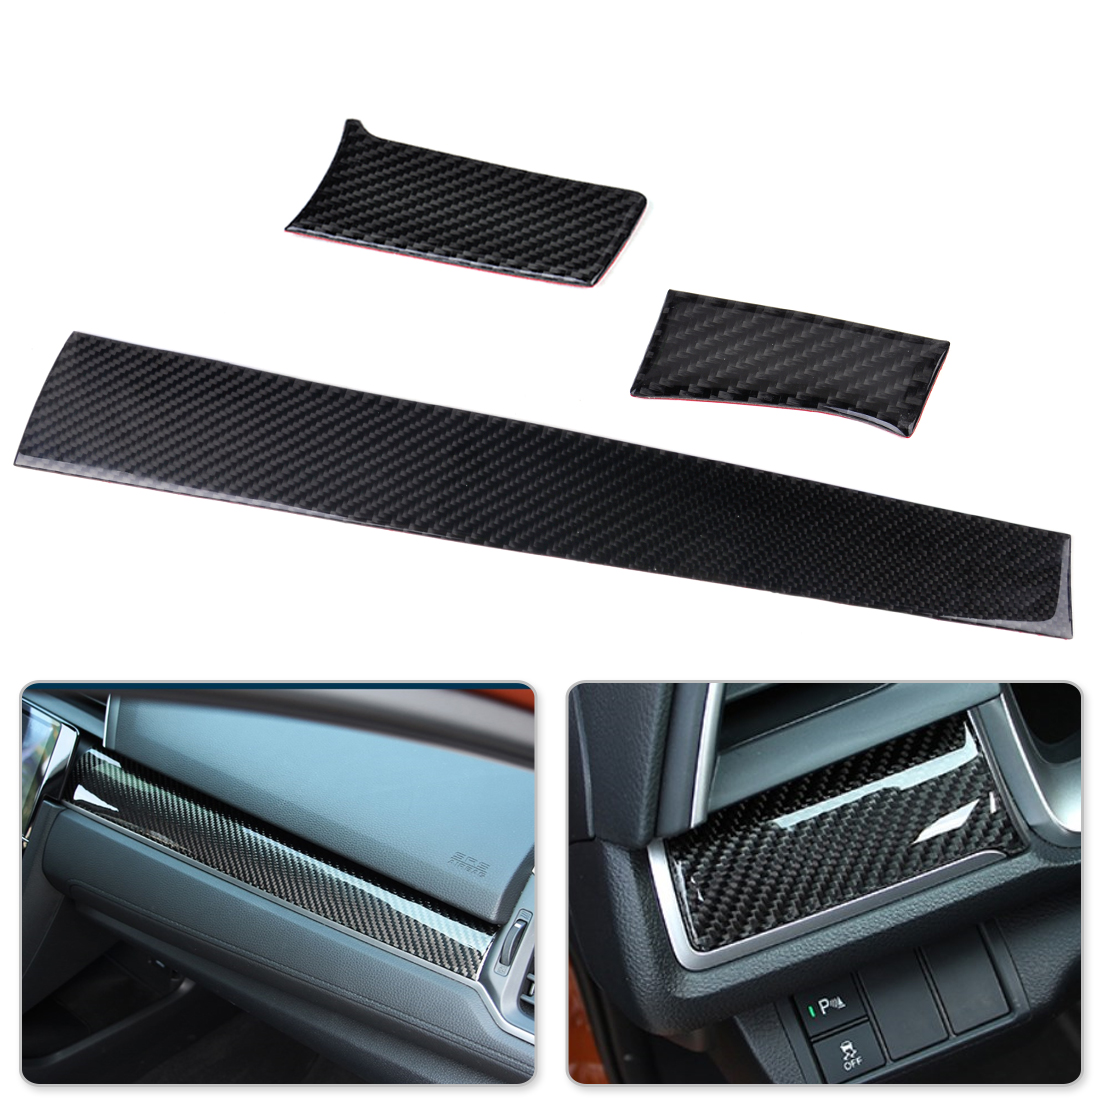 CITALL 3pcs Car Black Carbon Fiber Center Console Dashboard Cover Trim Sticker Fit for Honda Civic 10th 2016